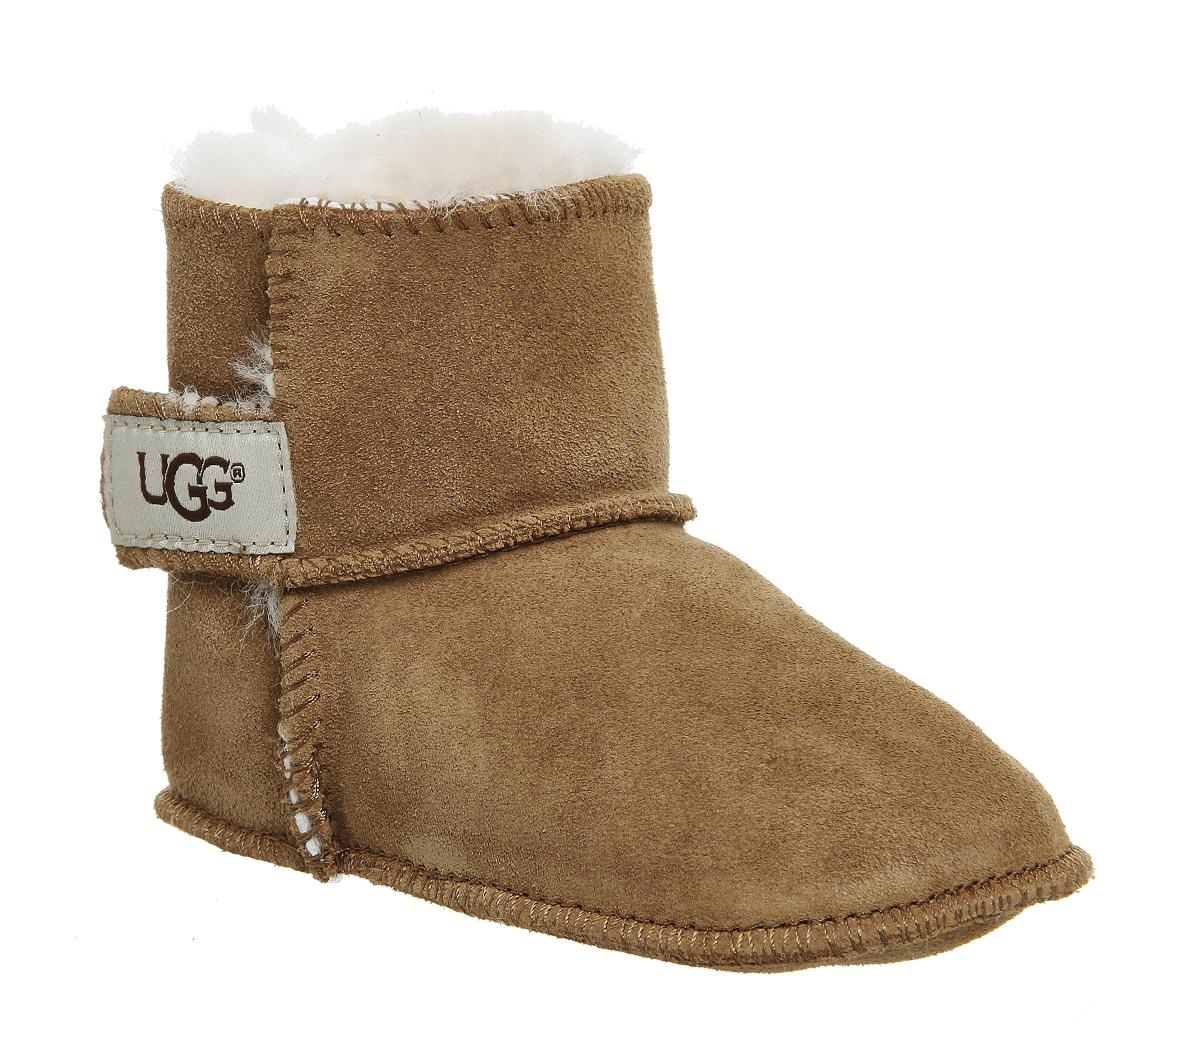 GAP Baby Toddler Boy Size 5 US 22 EU Brown Sherpa-Lined Boots Booties Shoes